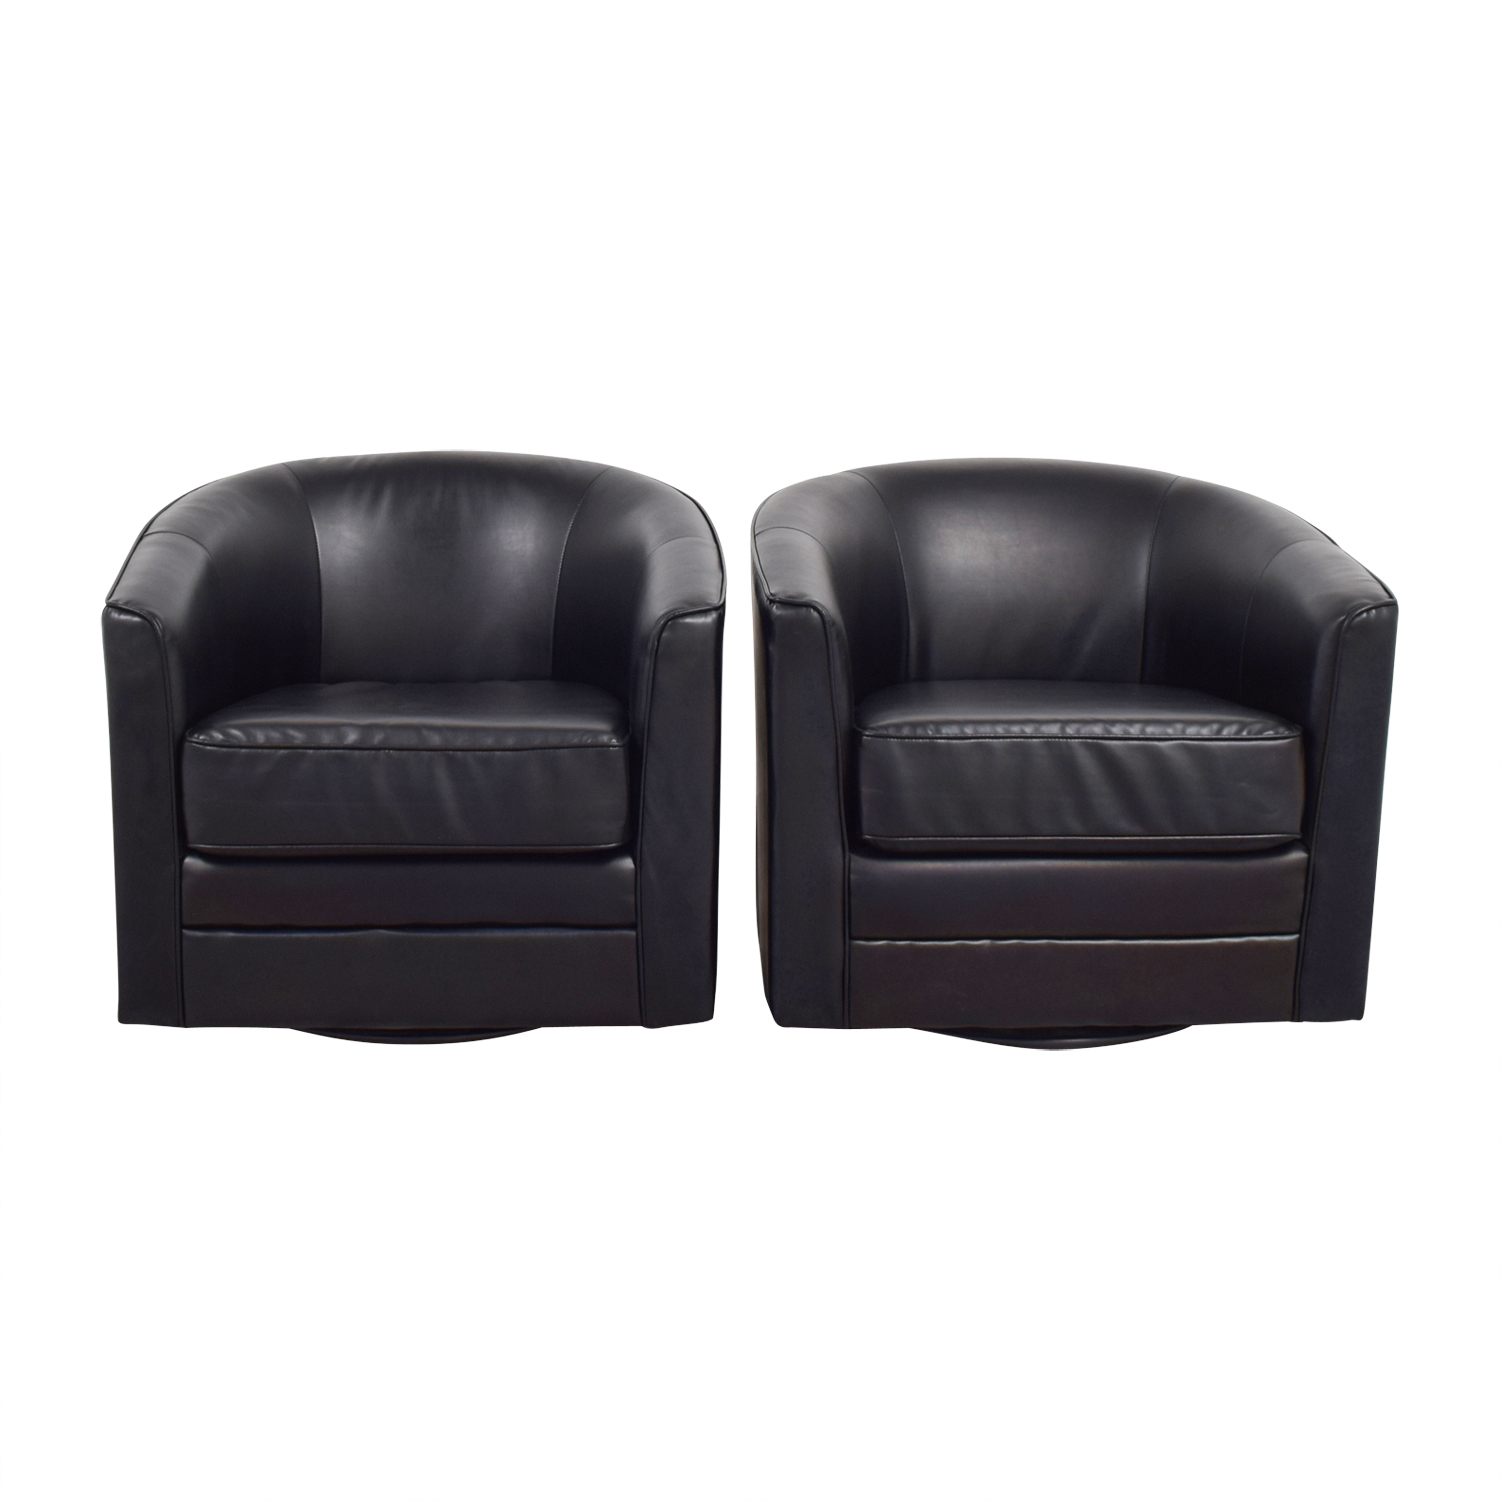 Bobs Furniture Bobs Furniture Black Leather Arm Accent Chairs coupon